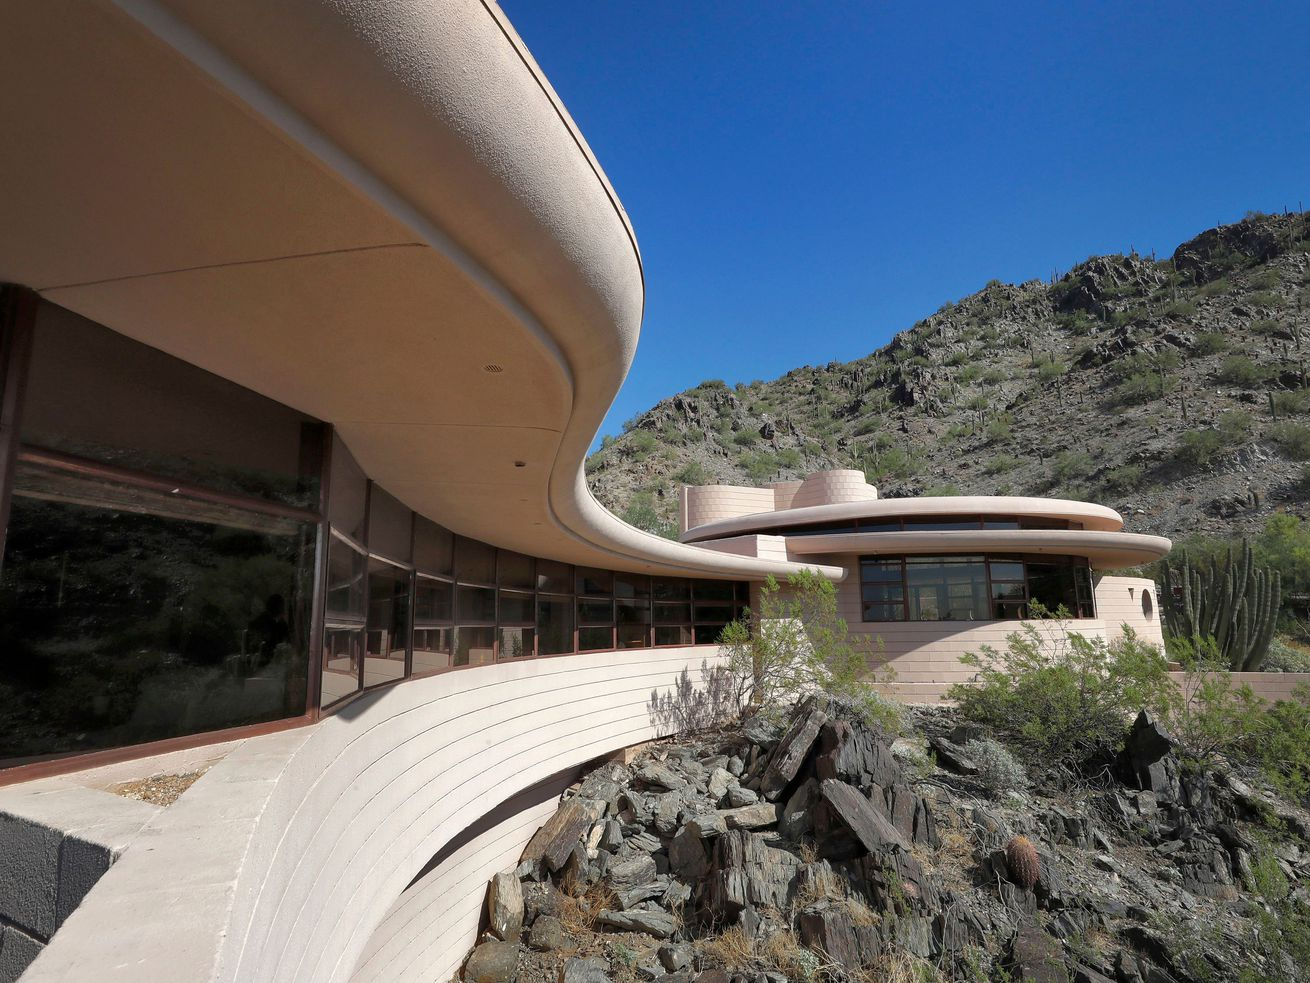 Frank Lloyd Wright?s Final Design, Auctioned Last Year for $1.7M, Now Asks $8M. Huh""